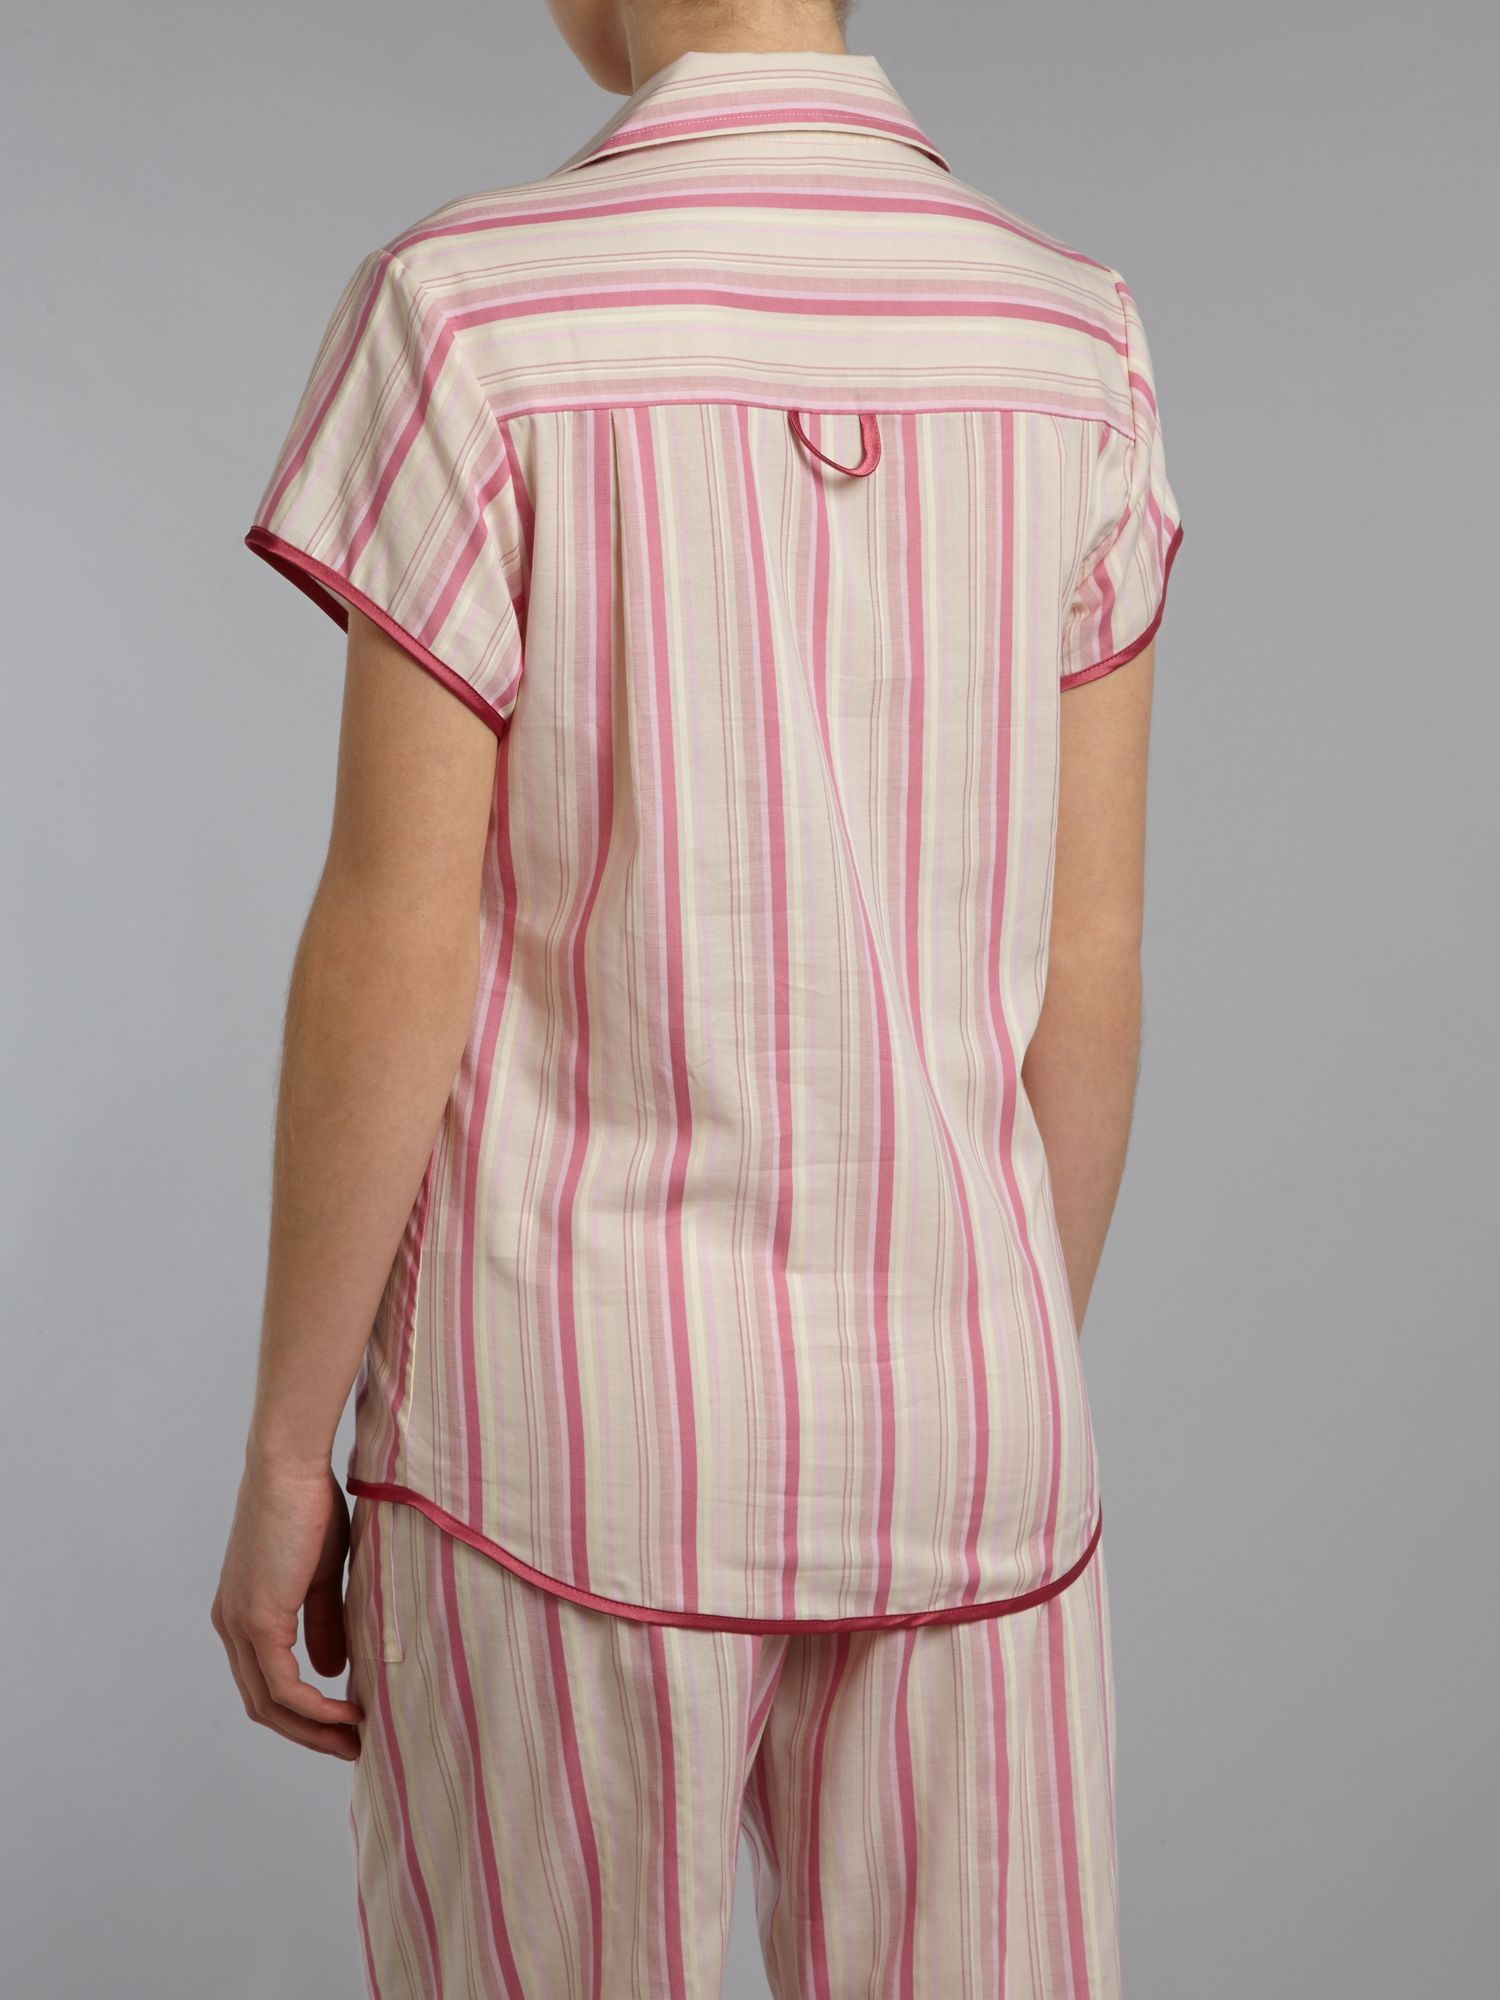 Vintage stripe short sleeve pj top